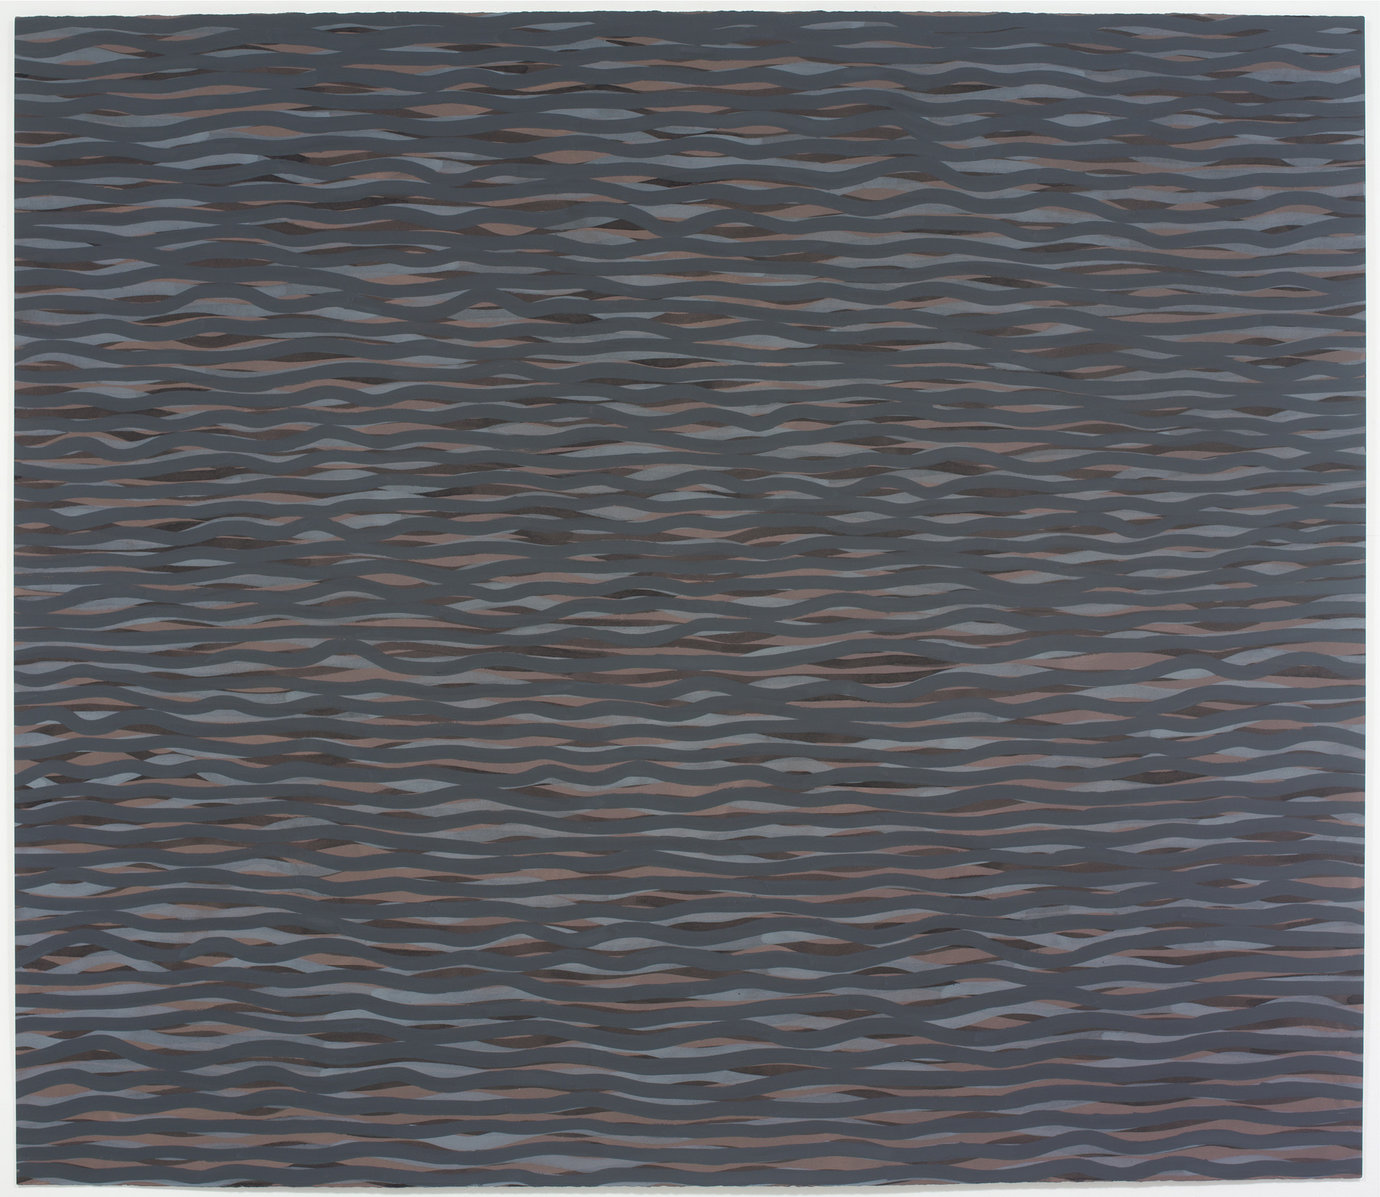 ", 2005. Gouache on paper, 60"" x 69-1/2"" (152.4 cm x 176.5 cm)."